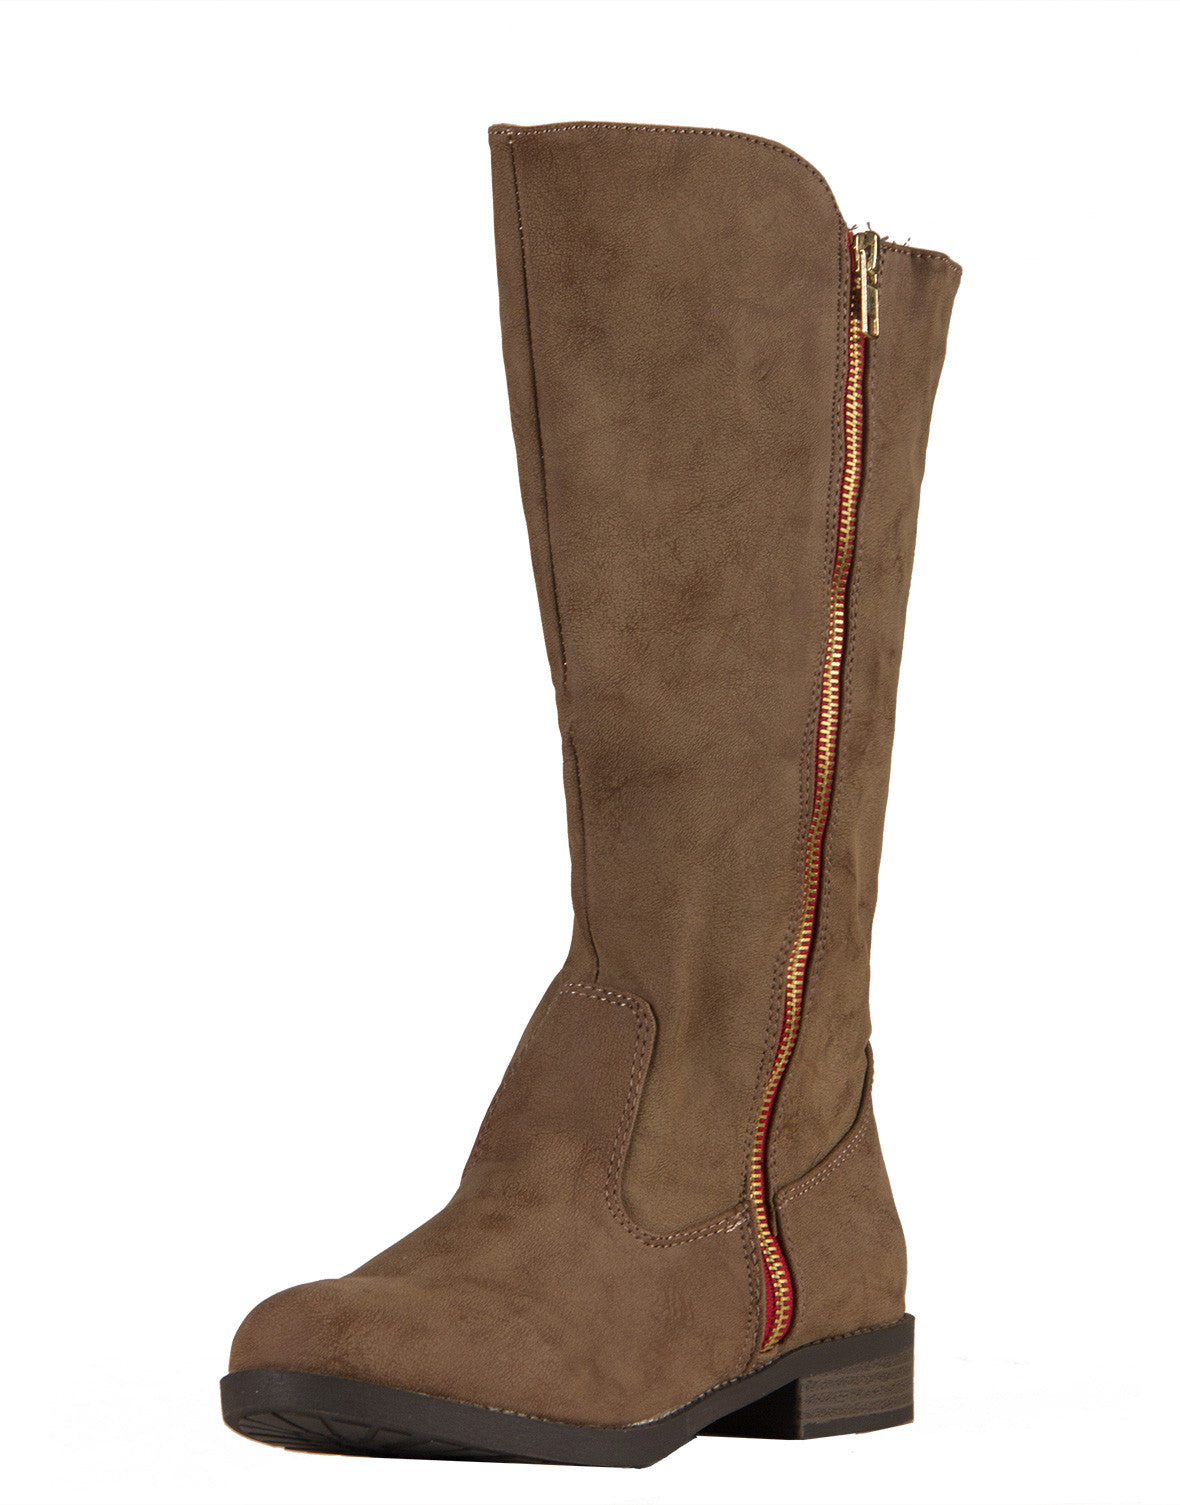 Red Zipper Western Tall Boots - 2020AVE